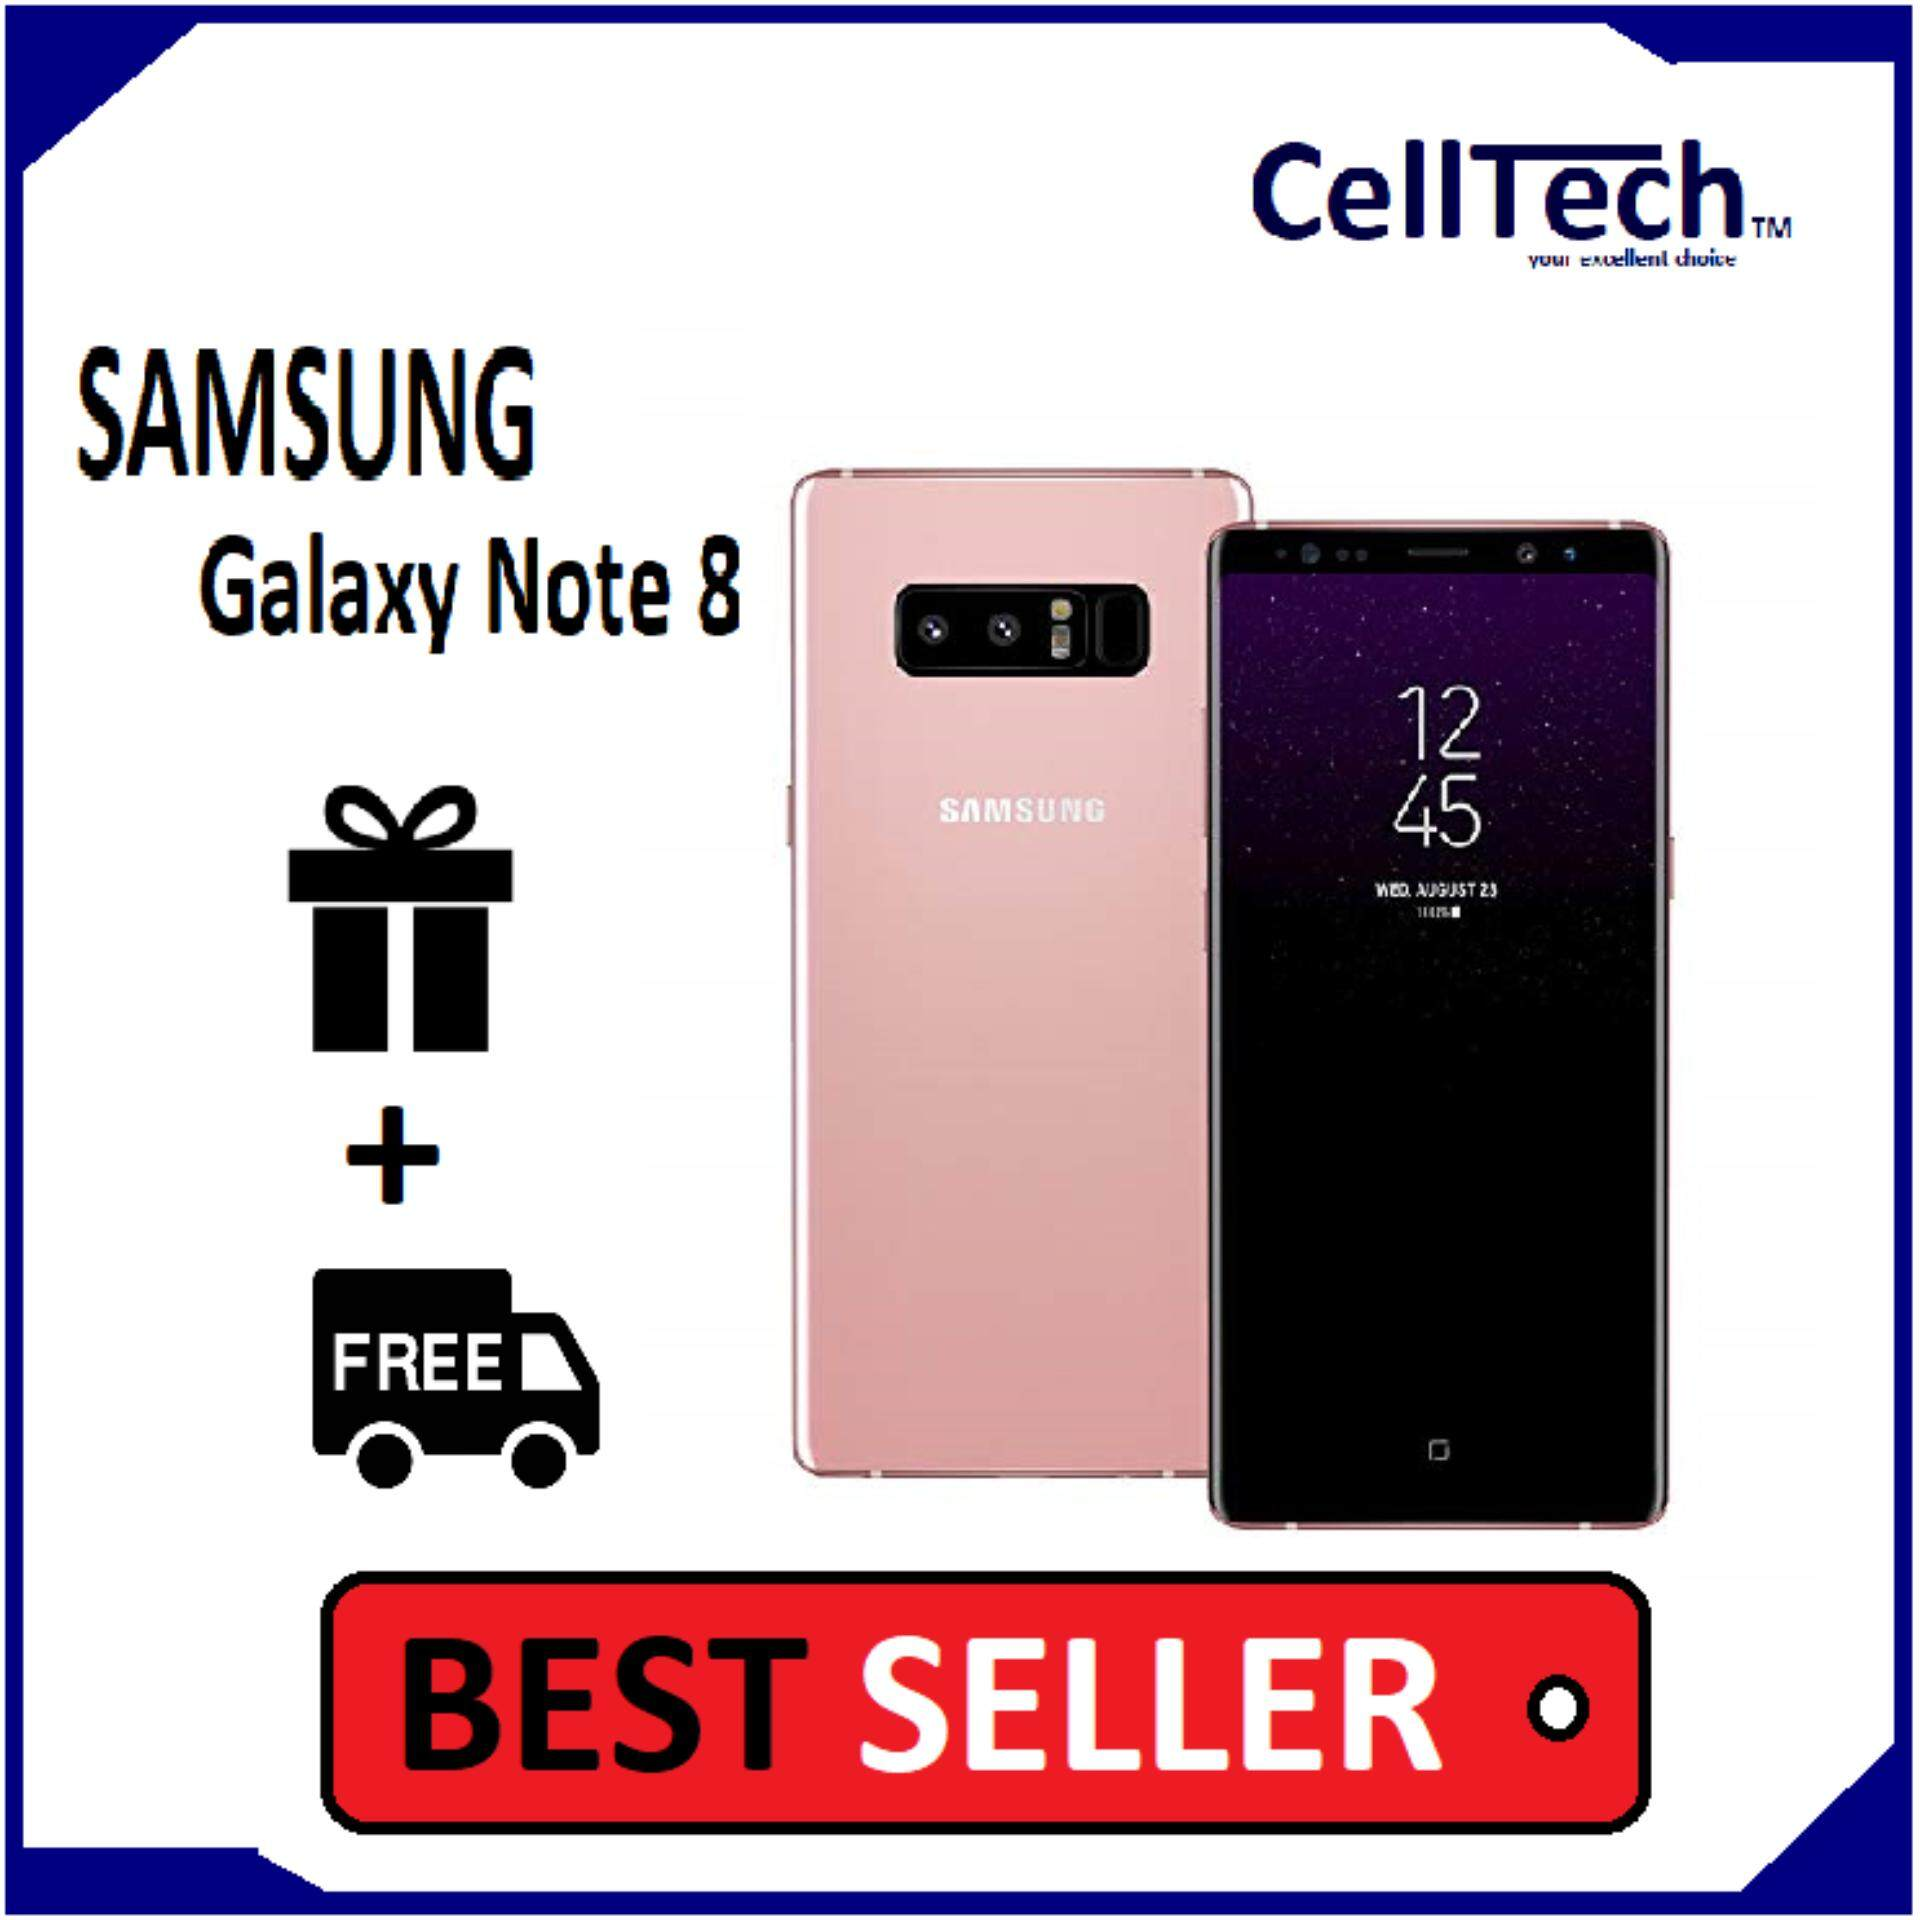 Samsung Mobile Phones With Best Online Price In Malaysia